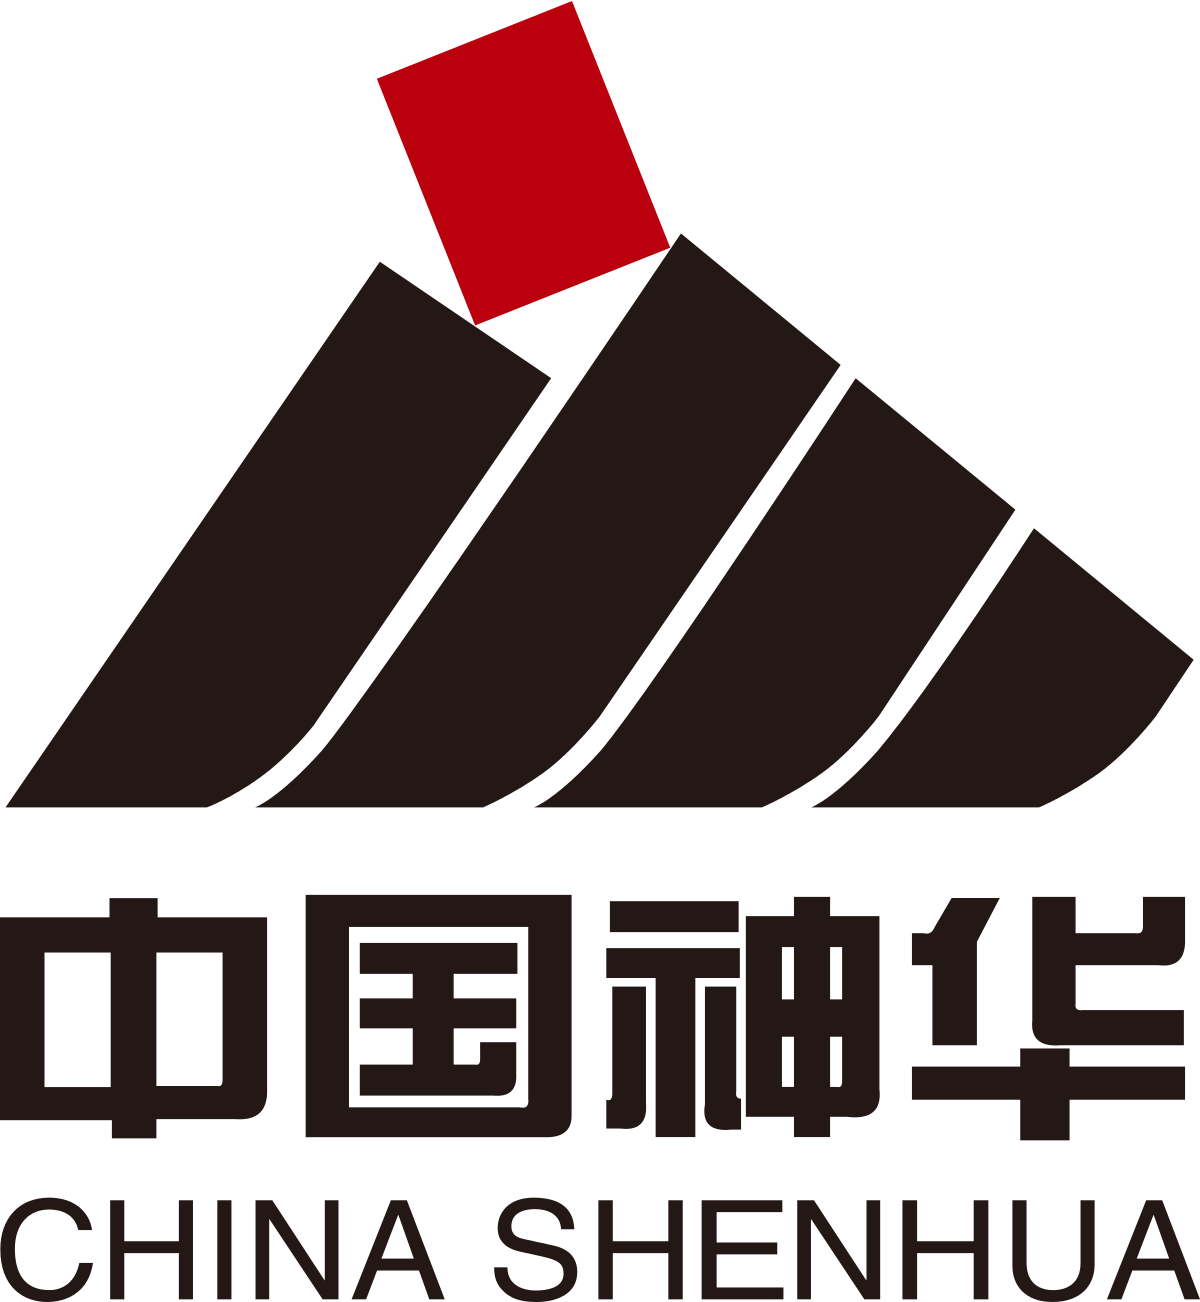 China Shenhua Energy Company Limited 601088 Icon Logo